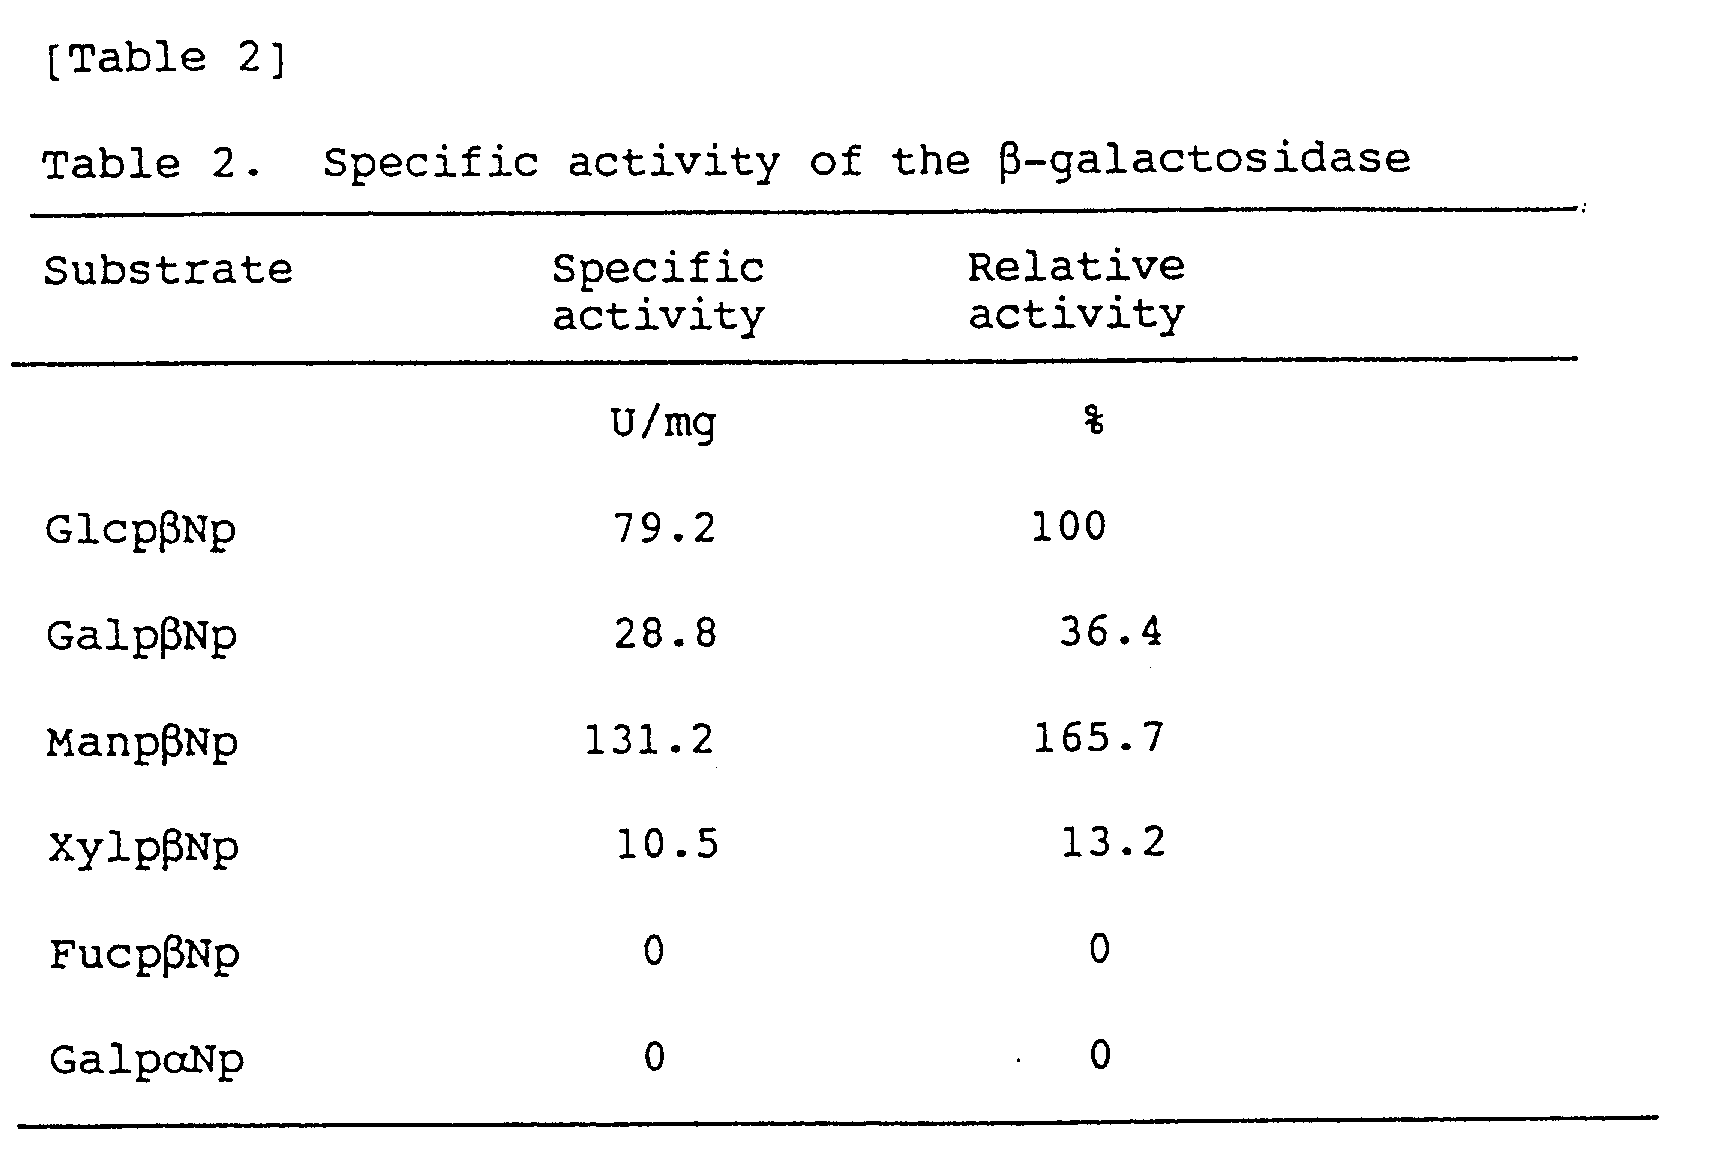 enzyme specificity using beta galactosidase and alpha galactosidase Enzyme specificity using beta-galactosidase and alpha-galactosidase lab essay enzyme specificity using beta - galactosidase and alpha- galactosidase introduction: in order to survive.